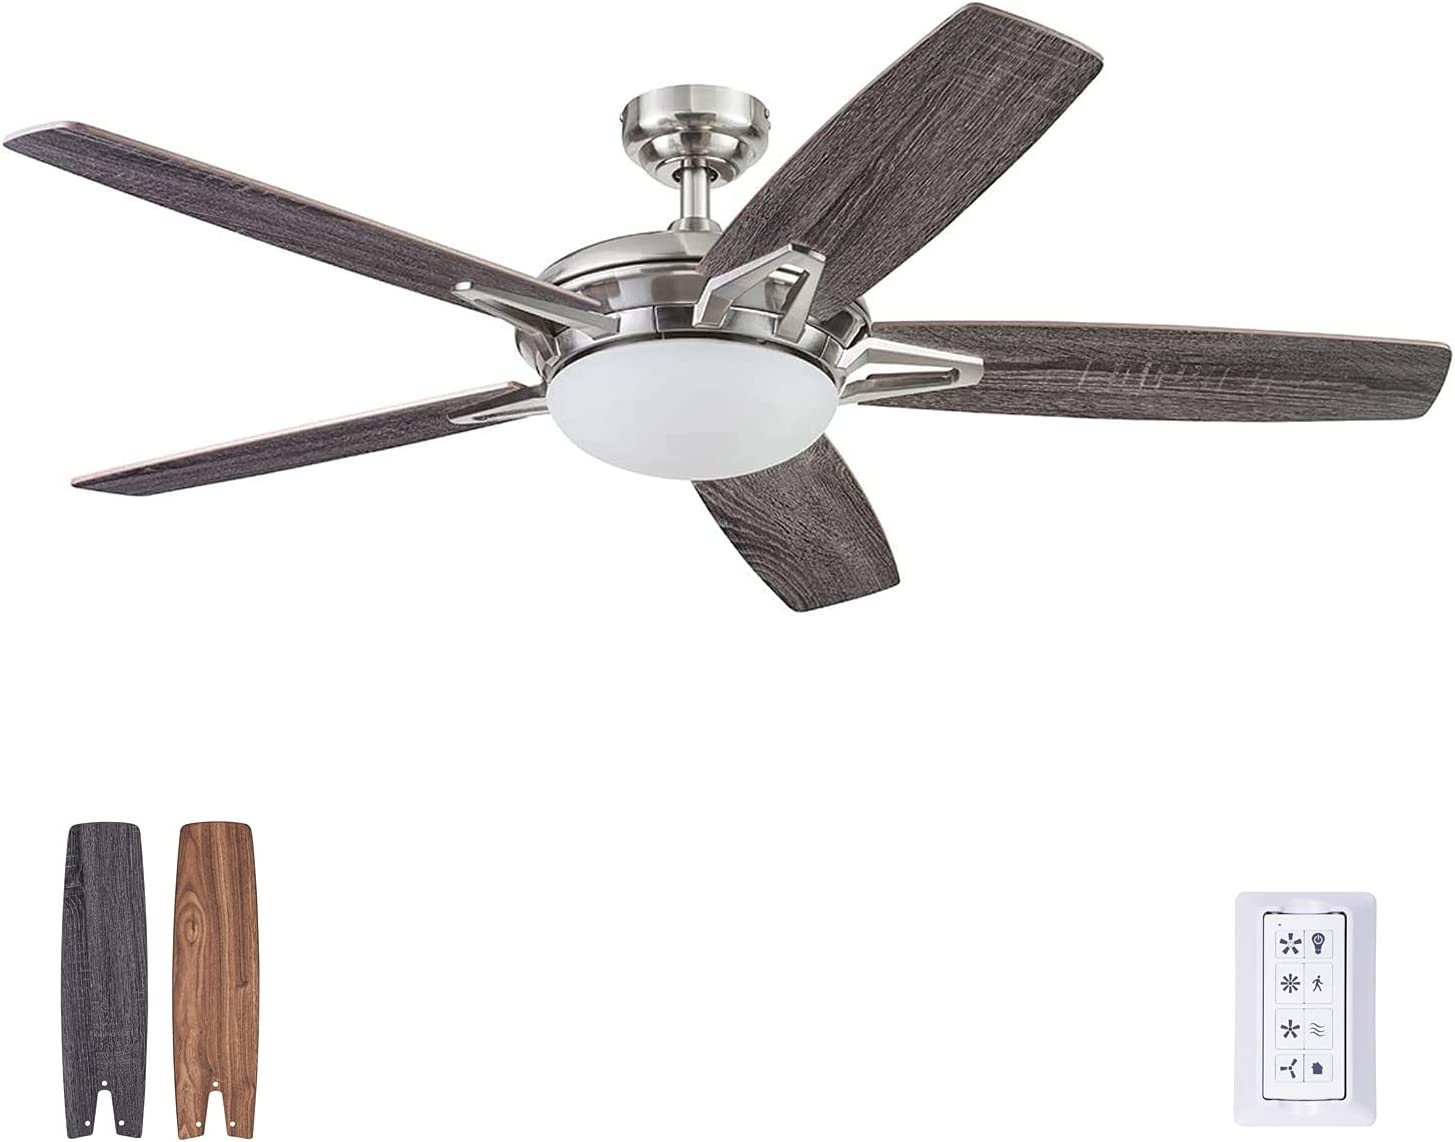 Prominence Home 51482-01 Clancy Ceiling Fan, 52, Brushed Nickel